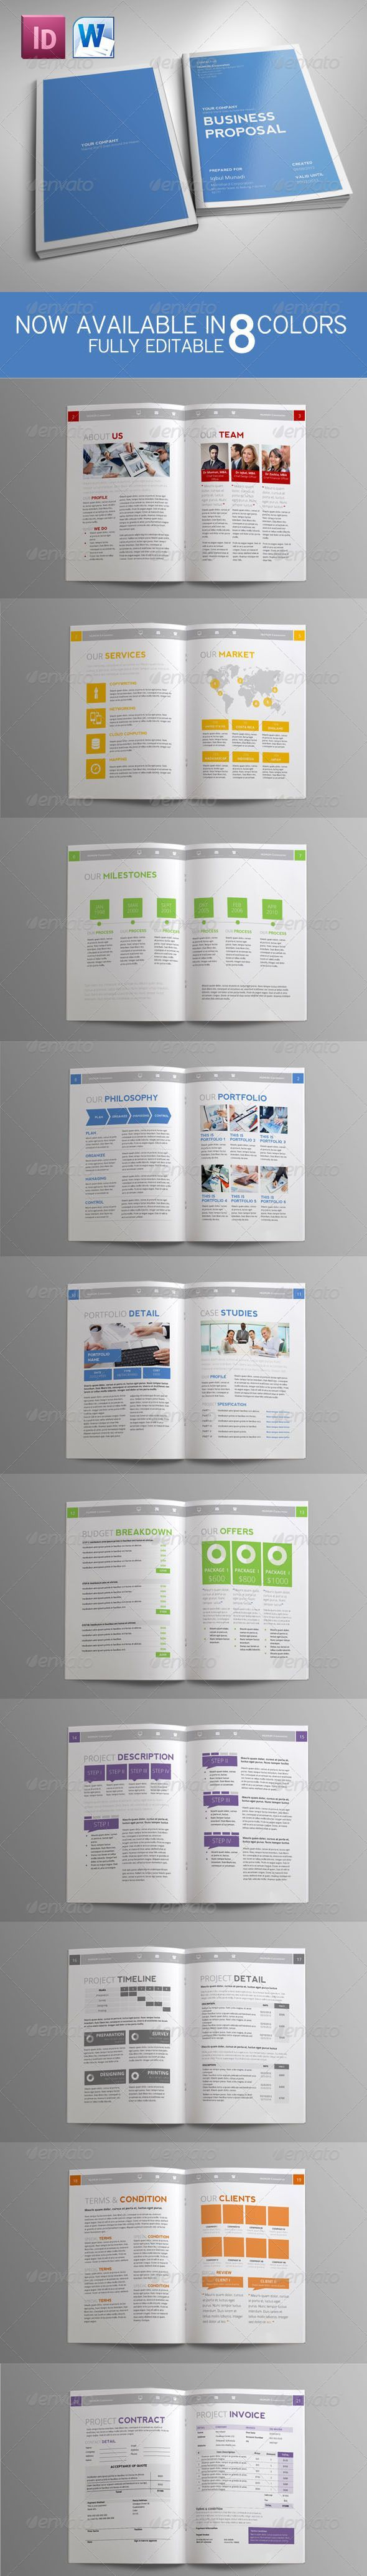 Commercial Proposal Format Beauteous 20 Best Business Propocal Images On Pinterest  Editorial Design .